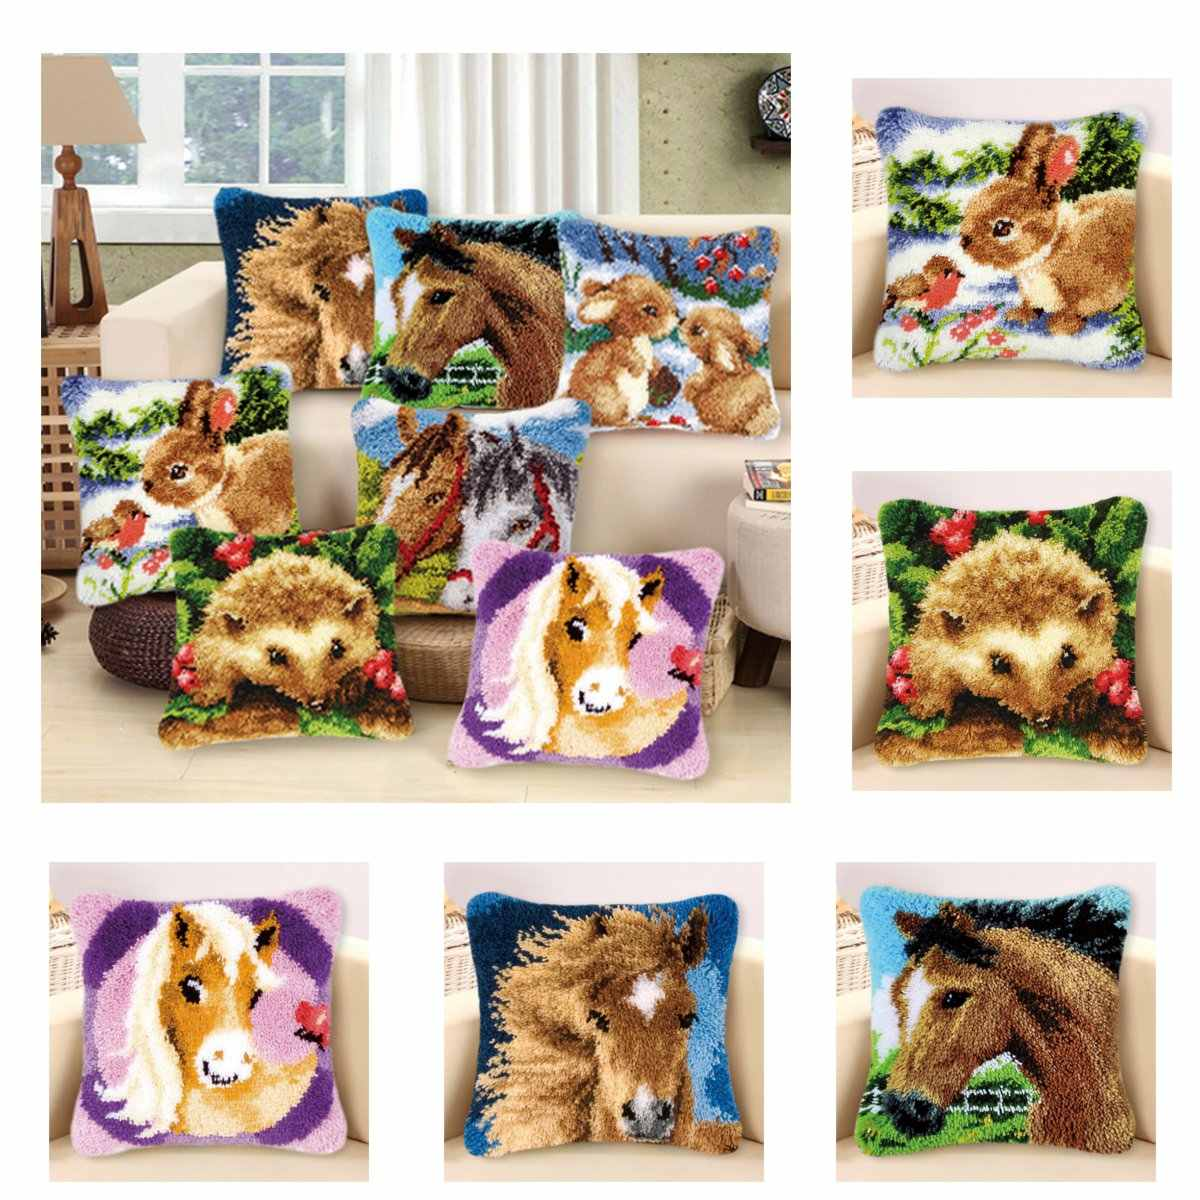 Cartoon Cushion Latch Hook Kit Flannel Pillow Mat DIY Craft Horse Rabbit Cross Stitch Needlework Crocheting Cushion Embroidery